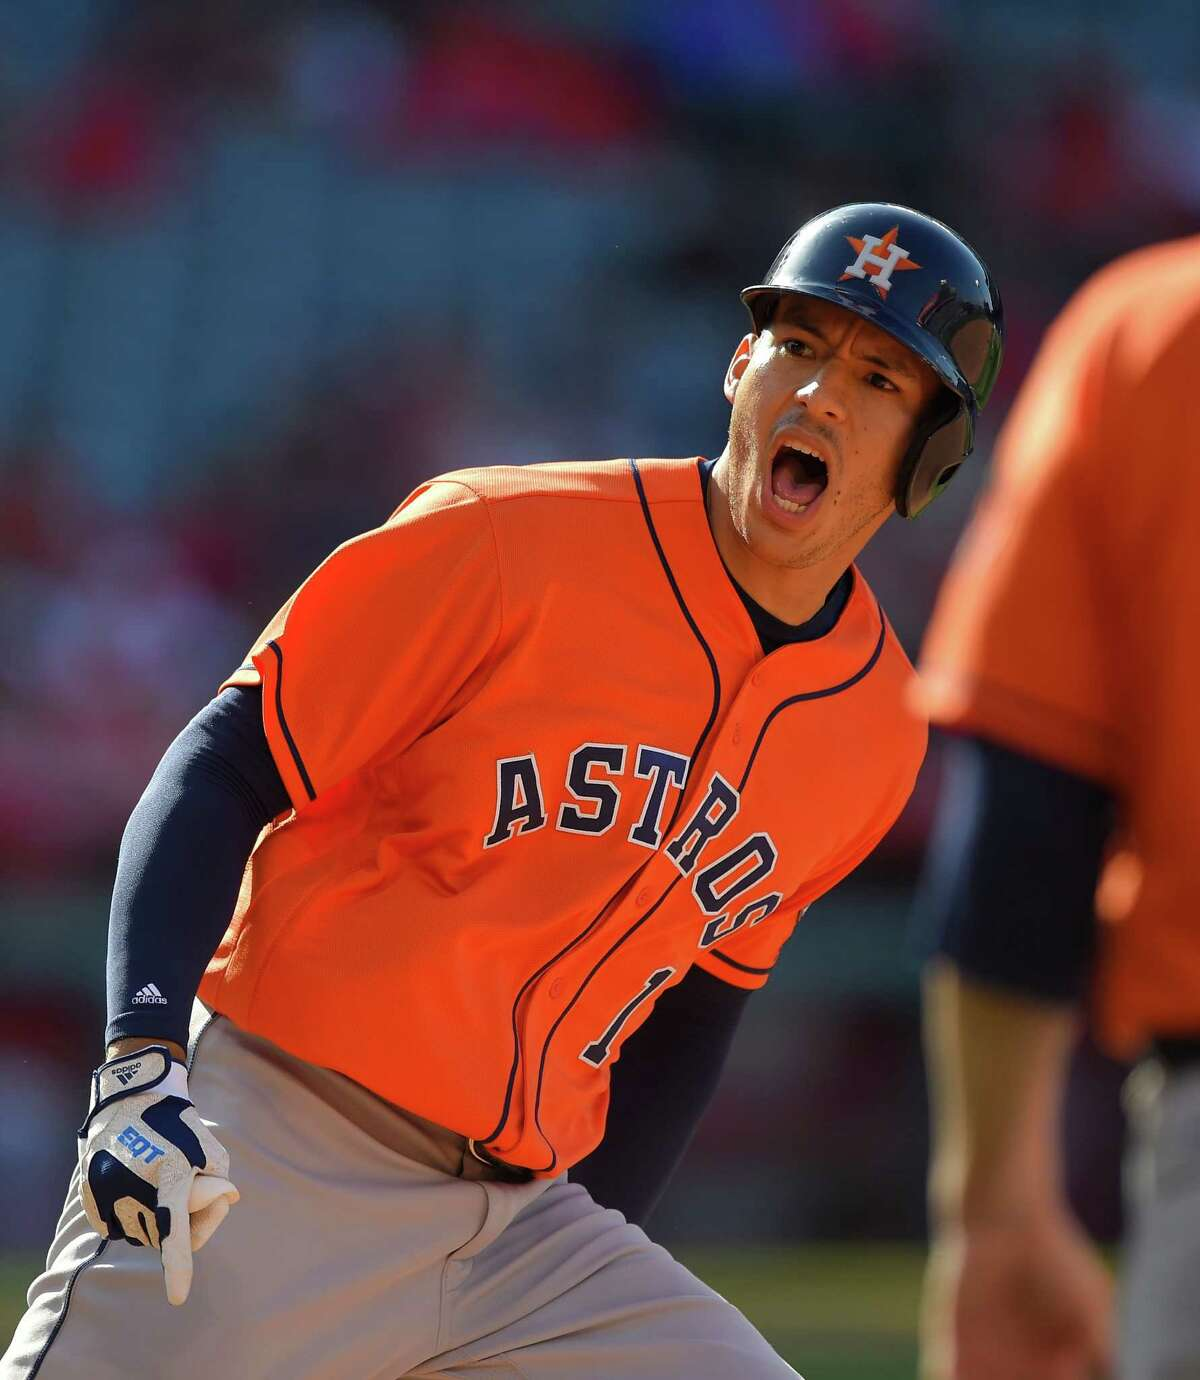 Houston Astros' Carlos Correa celebrates as he rounds first after hitting a three-run home run during the 13th inning of a baseball game against the Los Angeles Angels, Sunday, May 29, 2016, in Anaheim, Calif. The Astros won 8-6. (AP Photo/Mark J. Terrill)